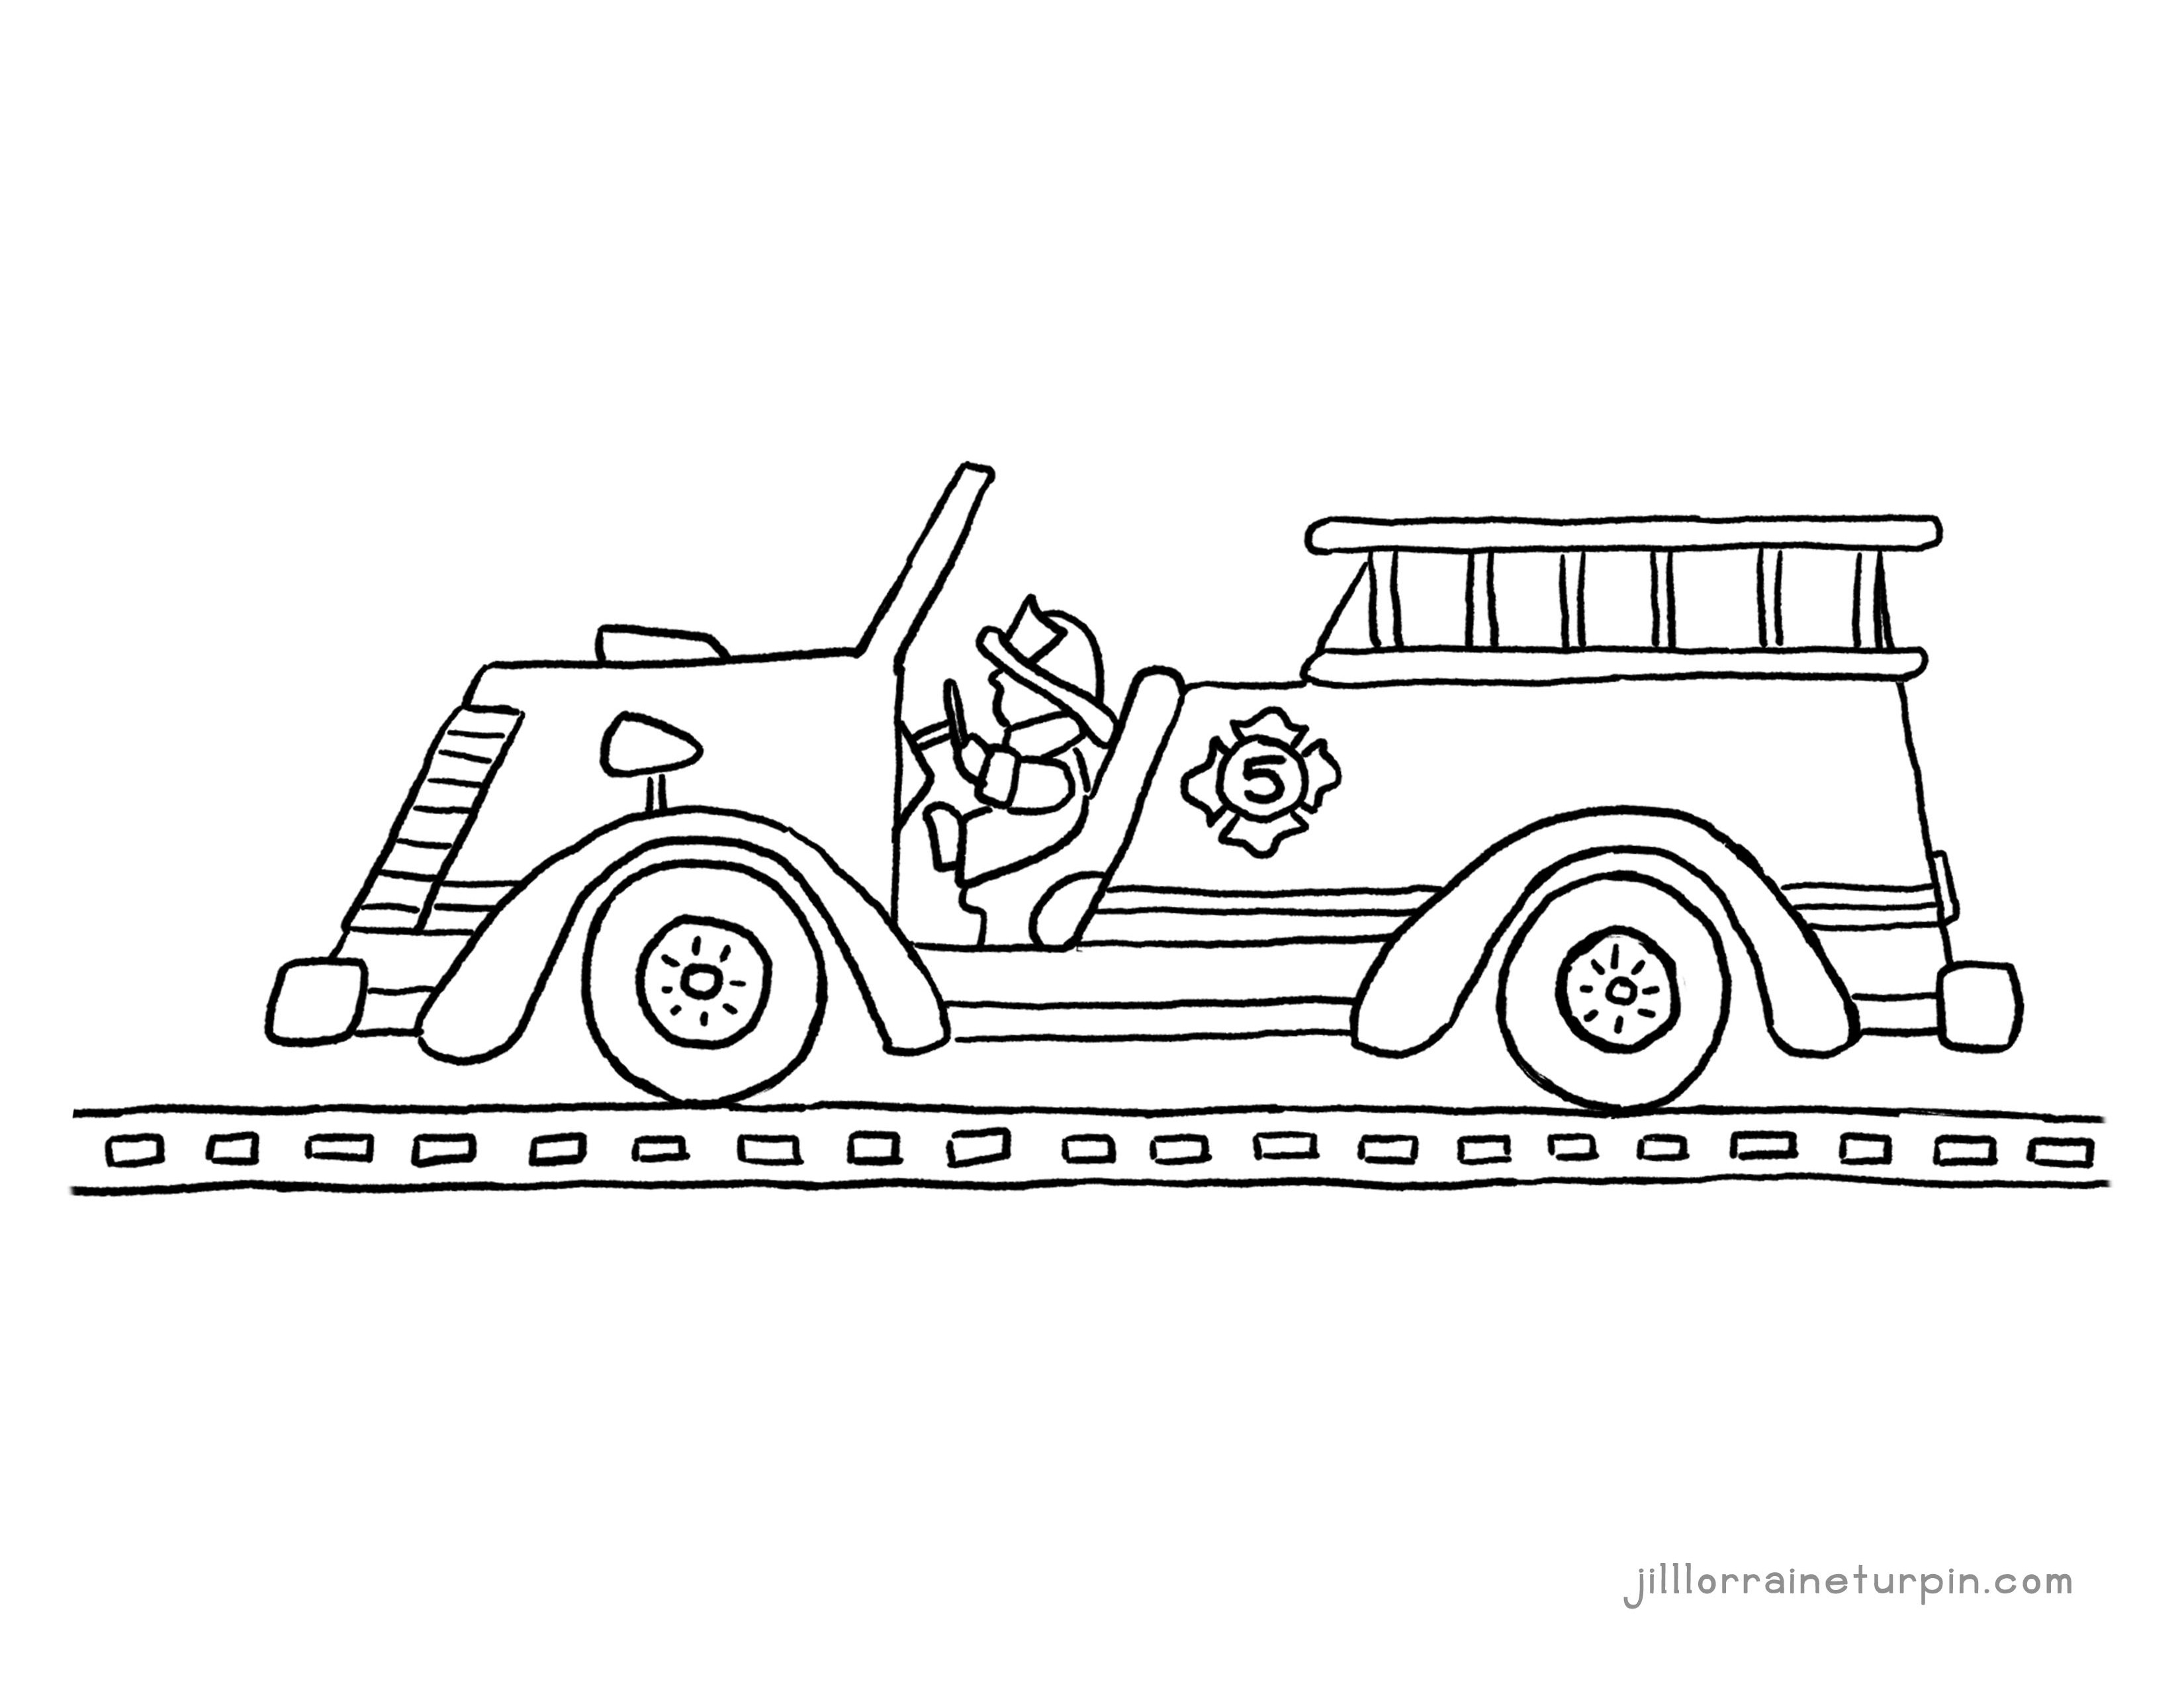 coloring page fire truck fire truck coloring pages pdf at getdrawings free download page fire coloring truck